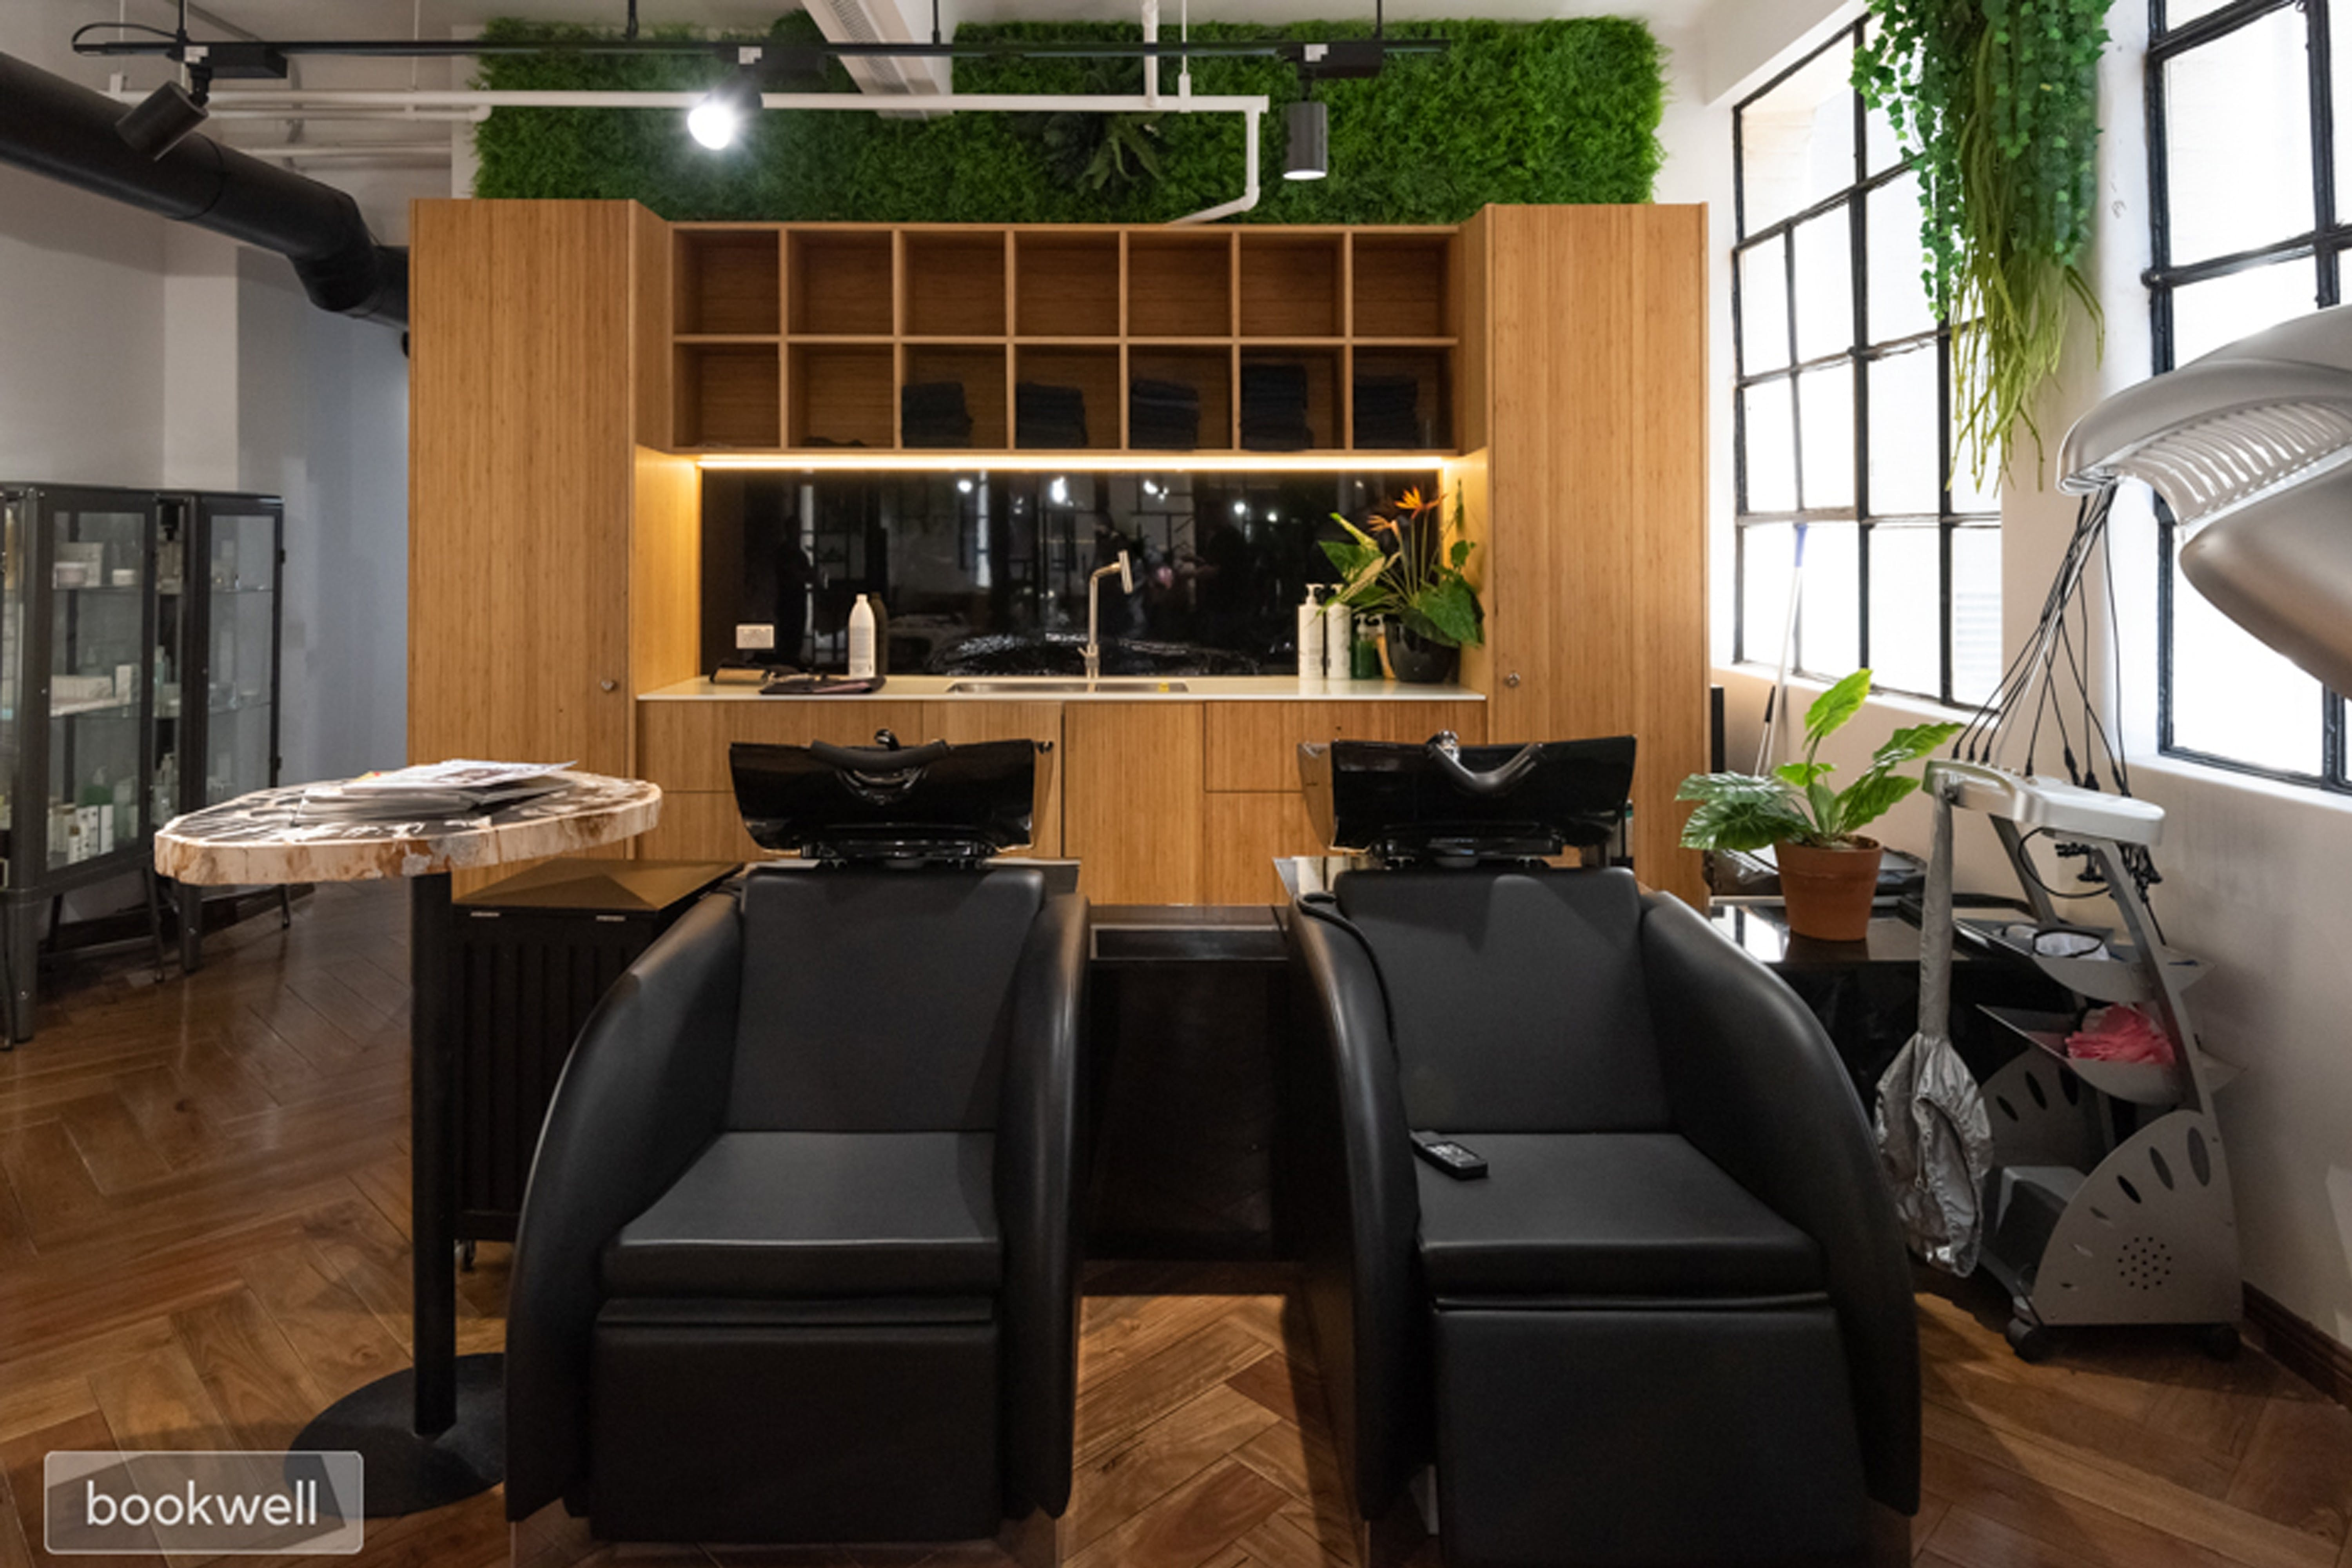 RENT A CHAIR HAIRDRESSING, multi-use area at House of TERRE A MER, image 2